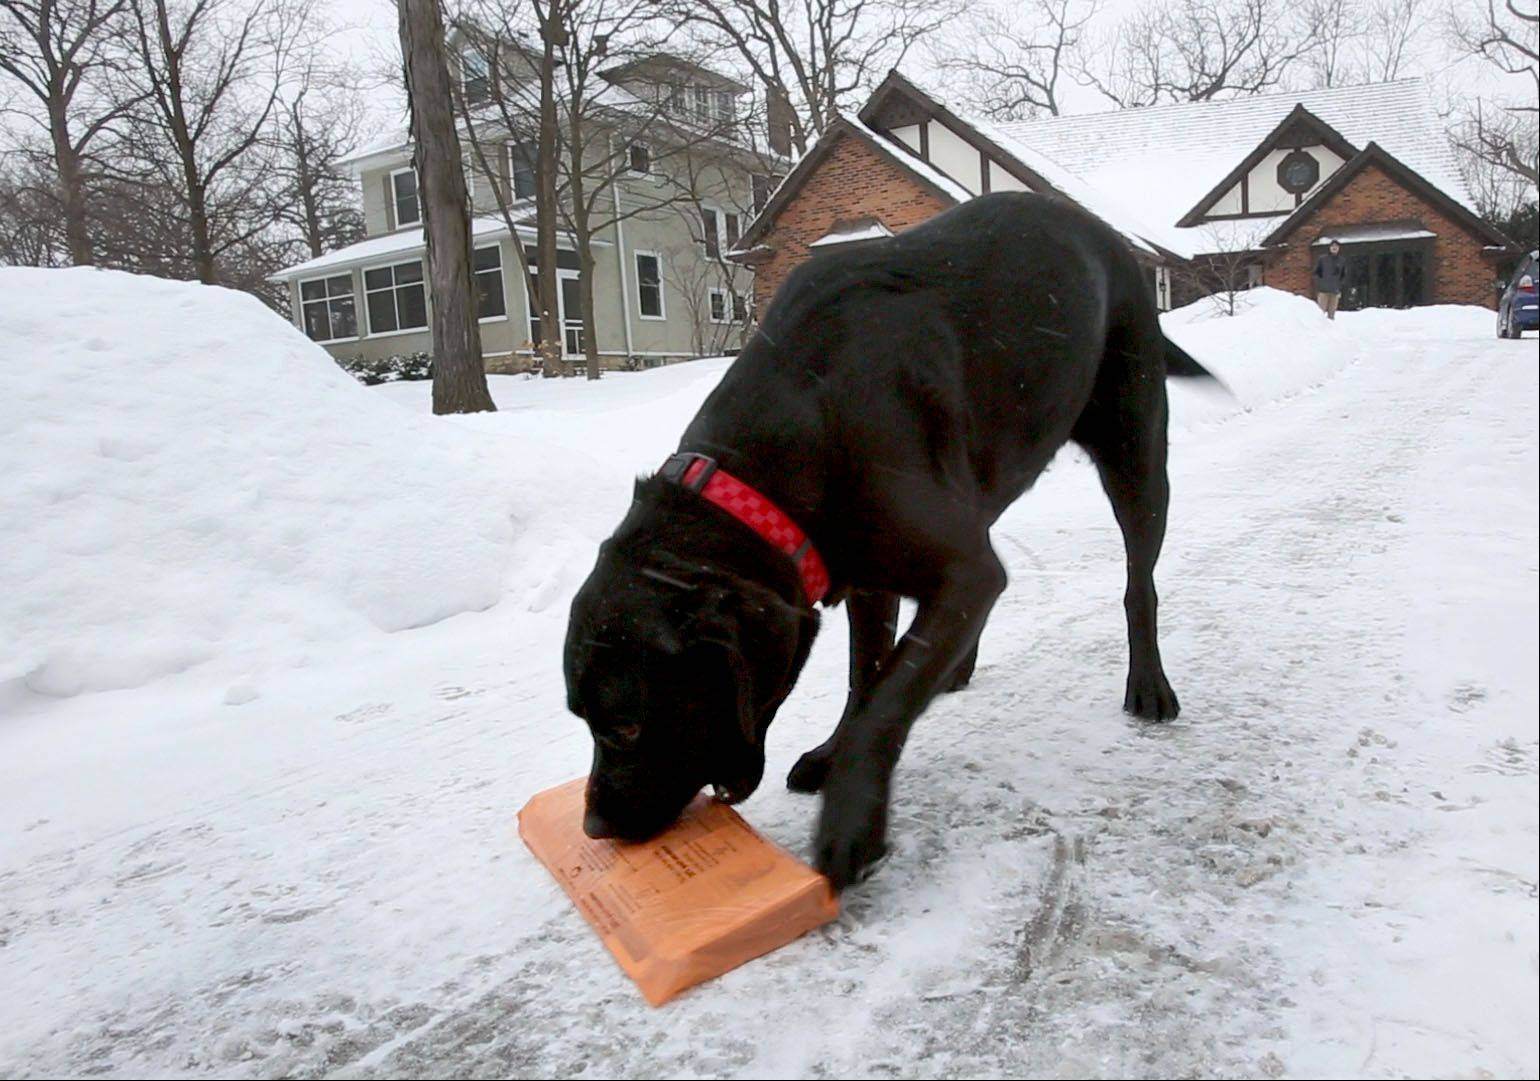 In a world where it can be tough to find a service you can count on in this snow and cold, Morgan loves to fetch the newspaper at the Guse household in Glen Ellyn. The dependable dog also brings a smile to neighbors by delivering their papers as well.